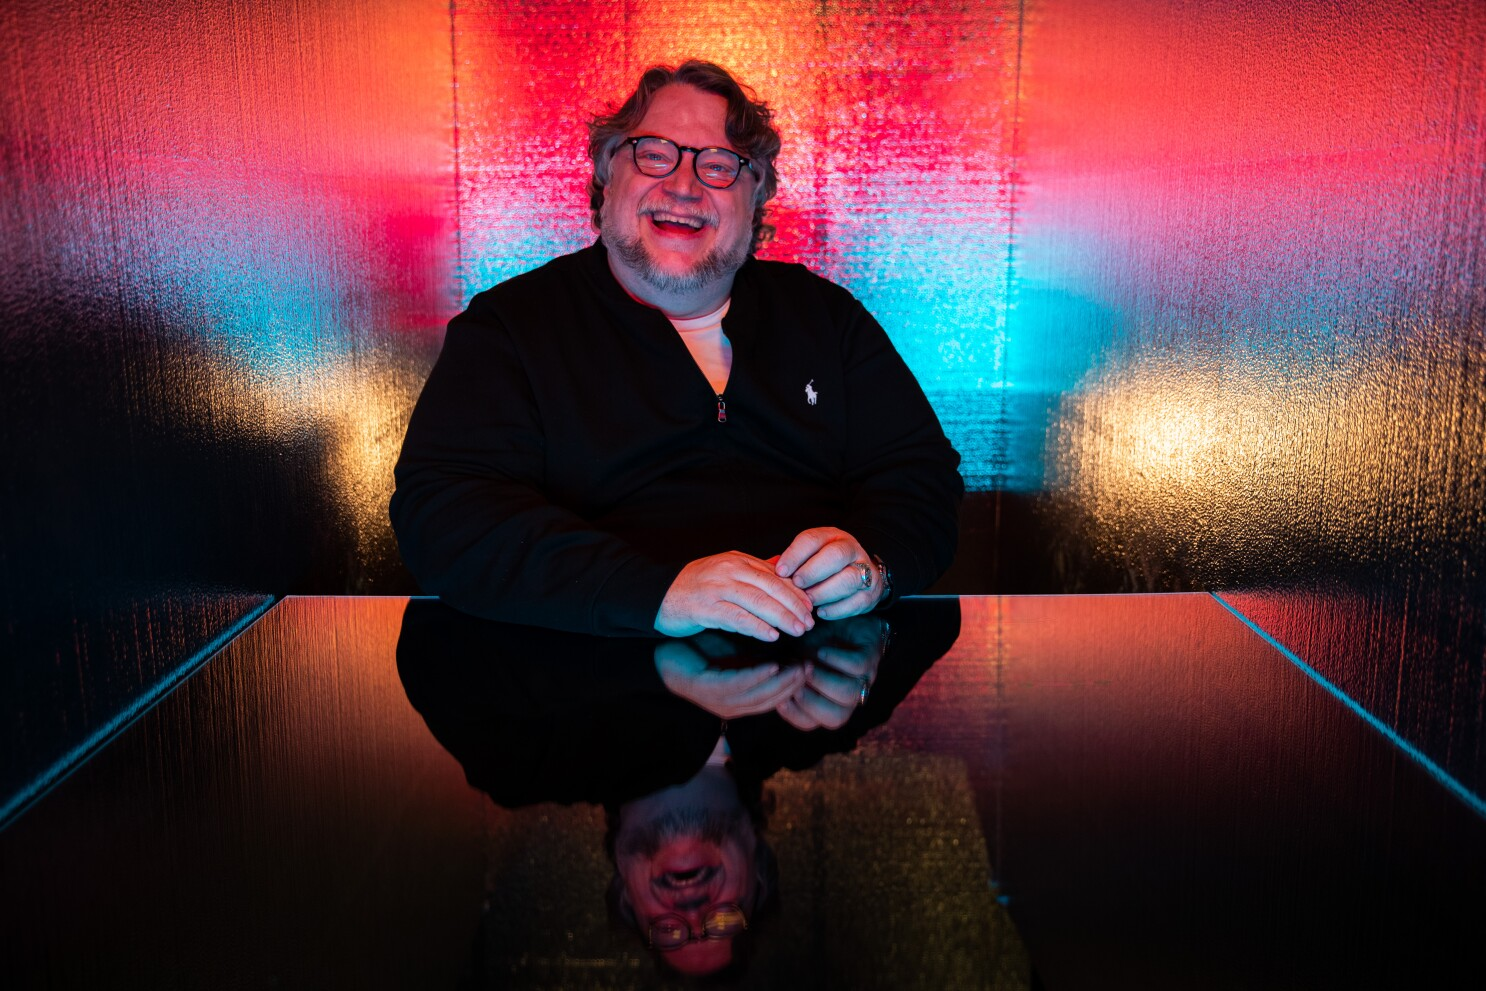 Guillermo Del Toro unveils his 'Scary Stories to Tell in the Dark' monster at Comic-Con 2019